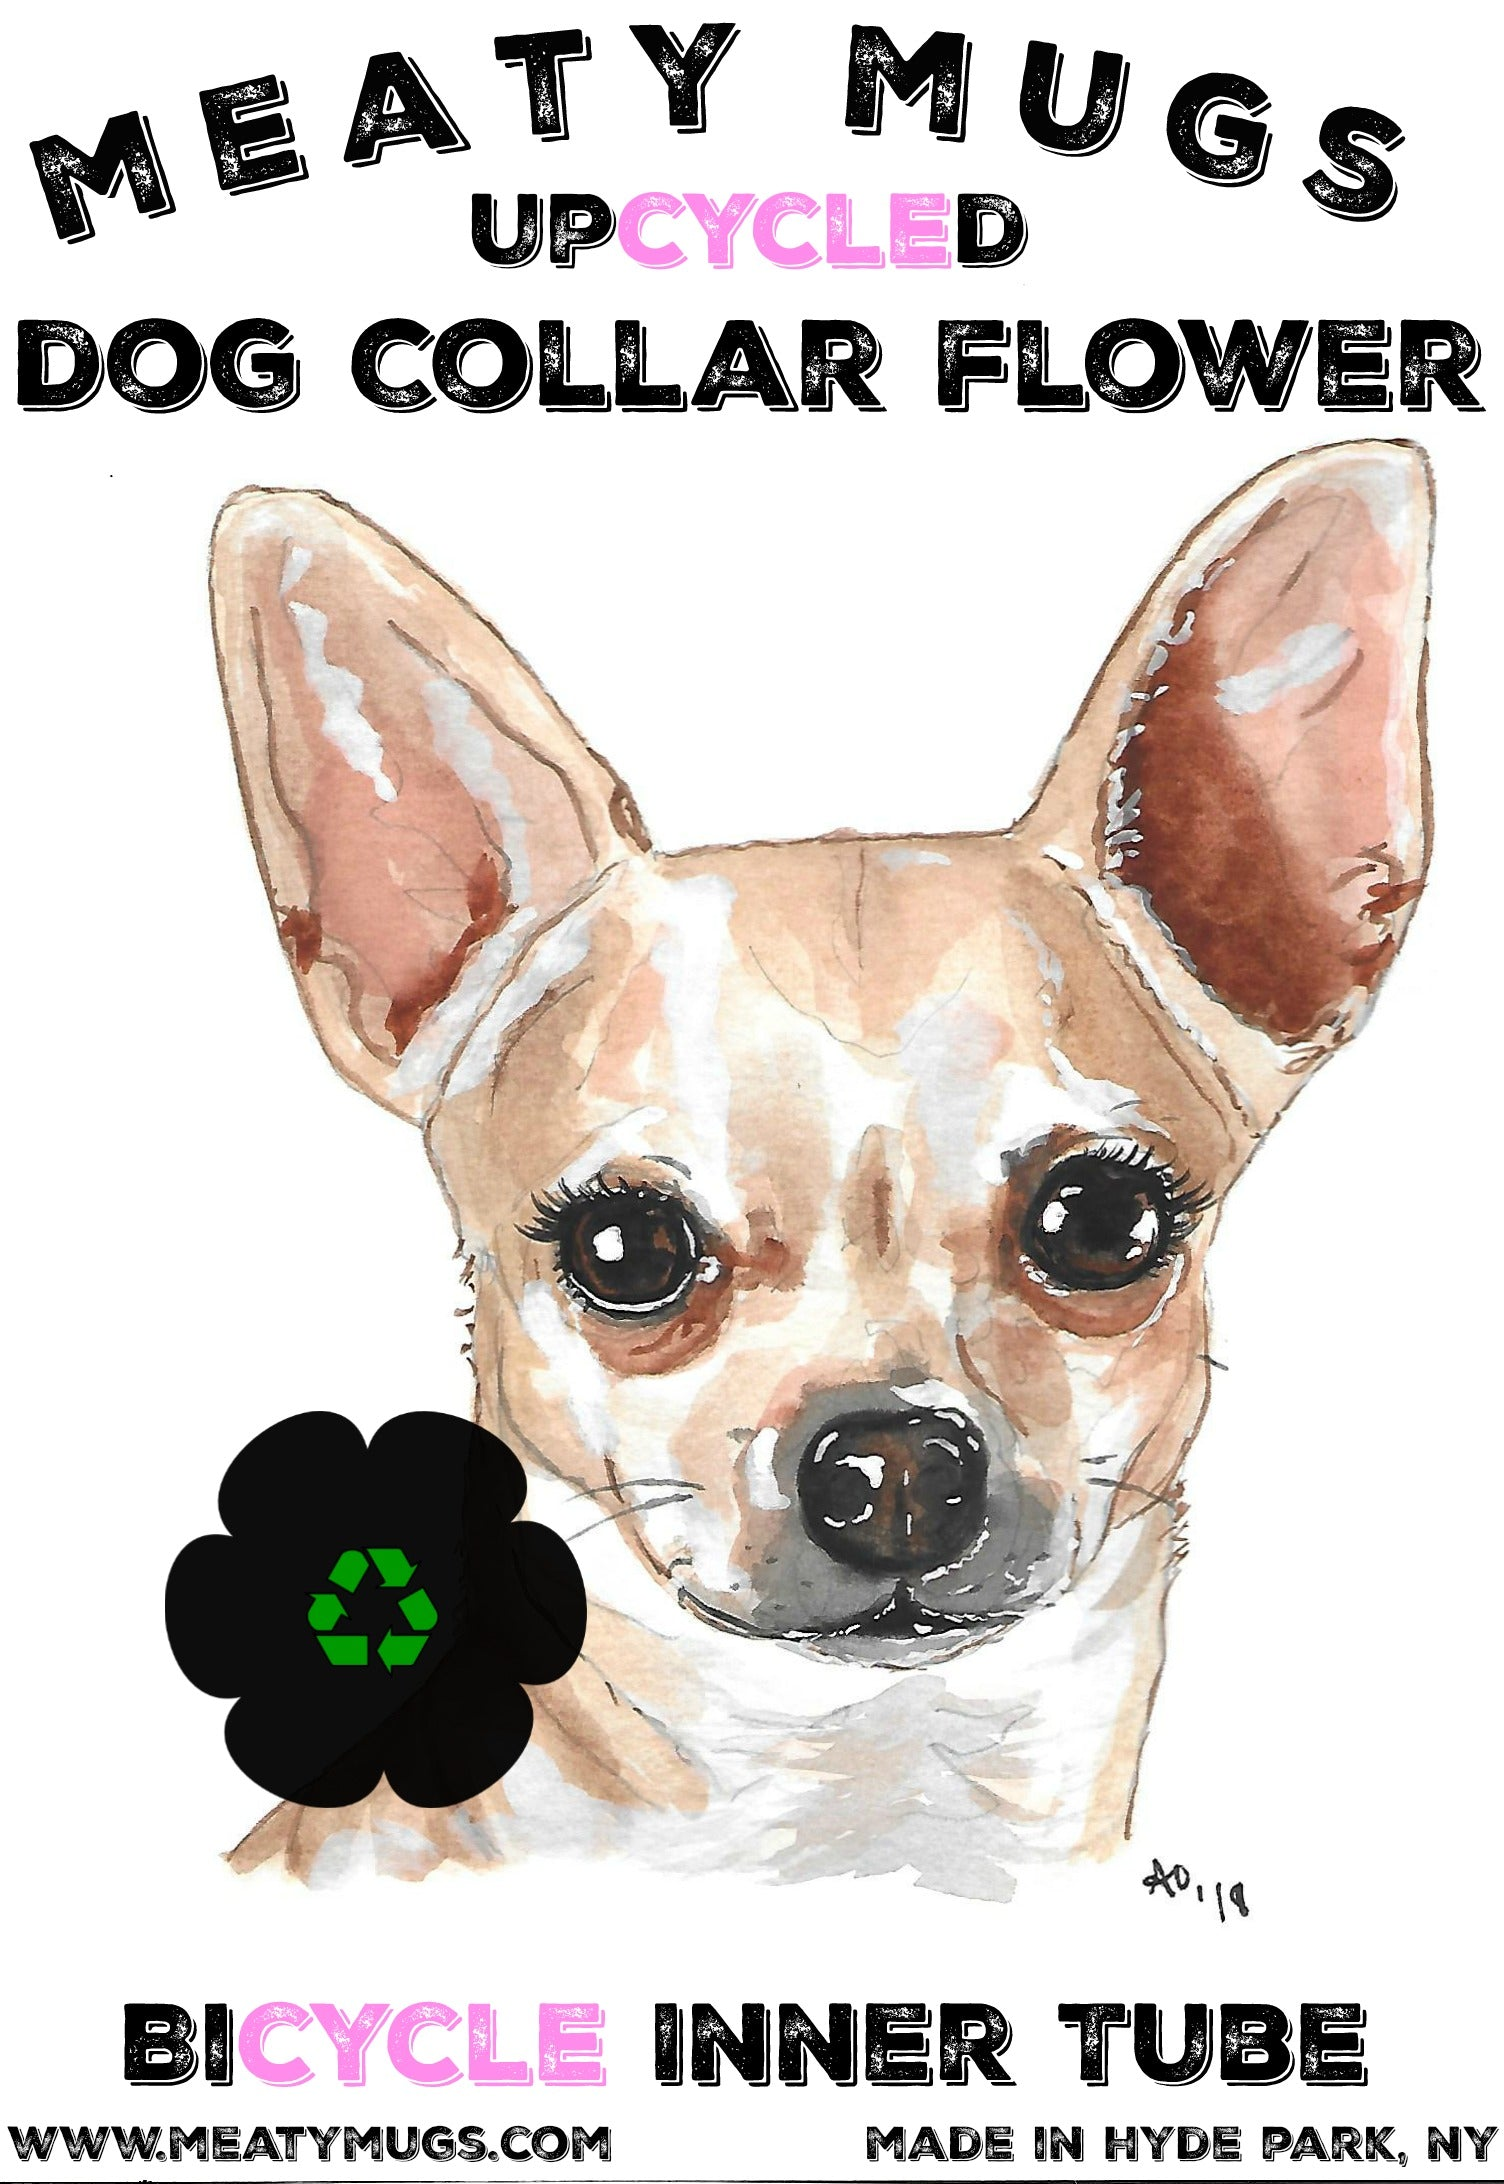 Upcycled Dog Collar Flower